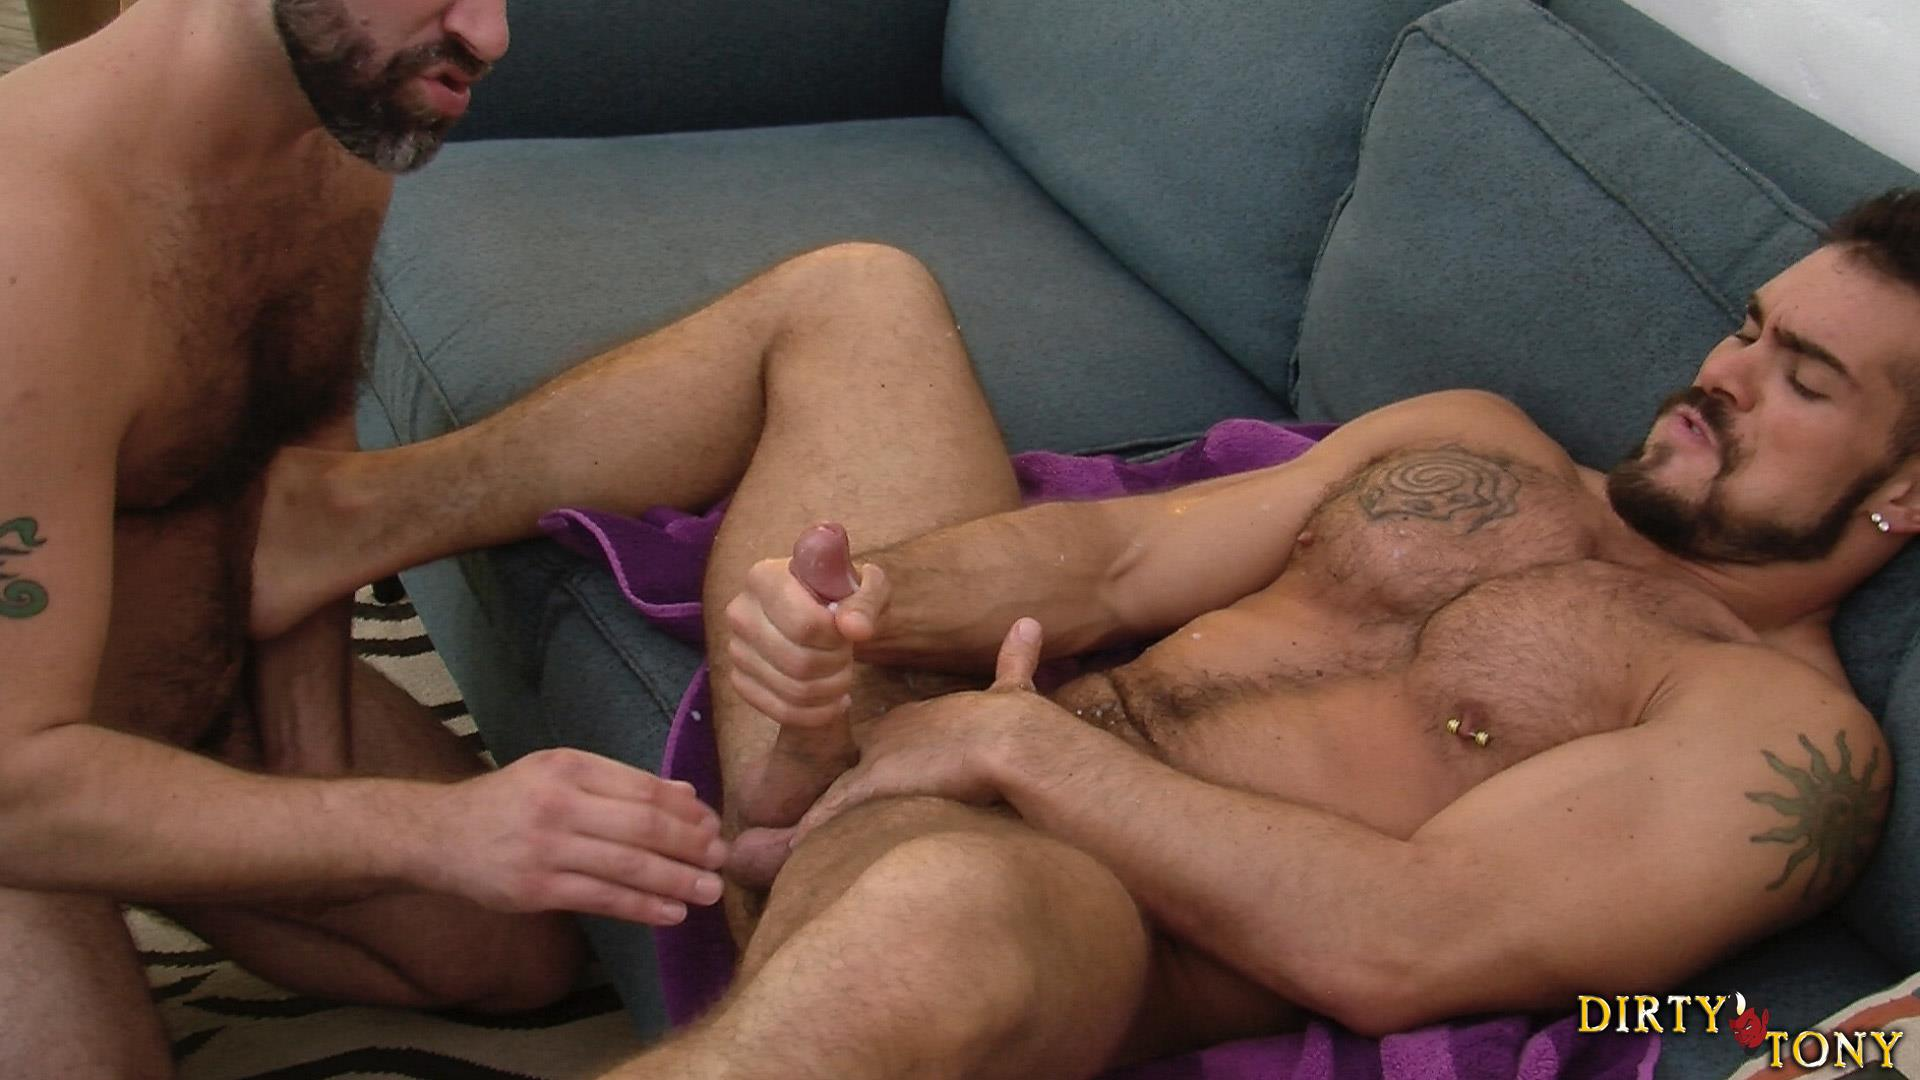 Amateur gay porn movie straight guy sucks 8